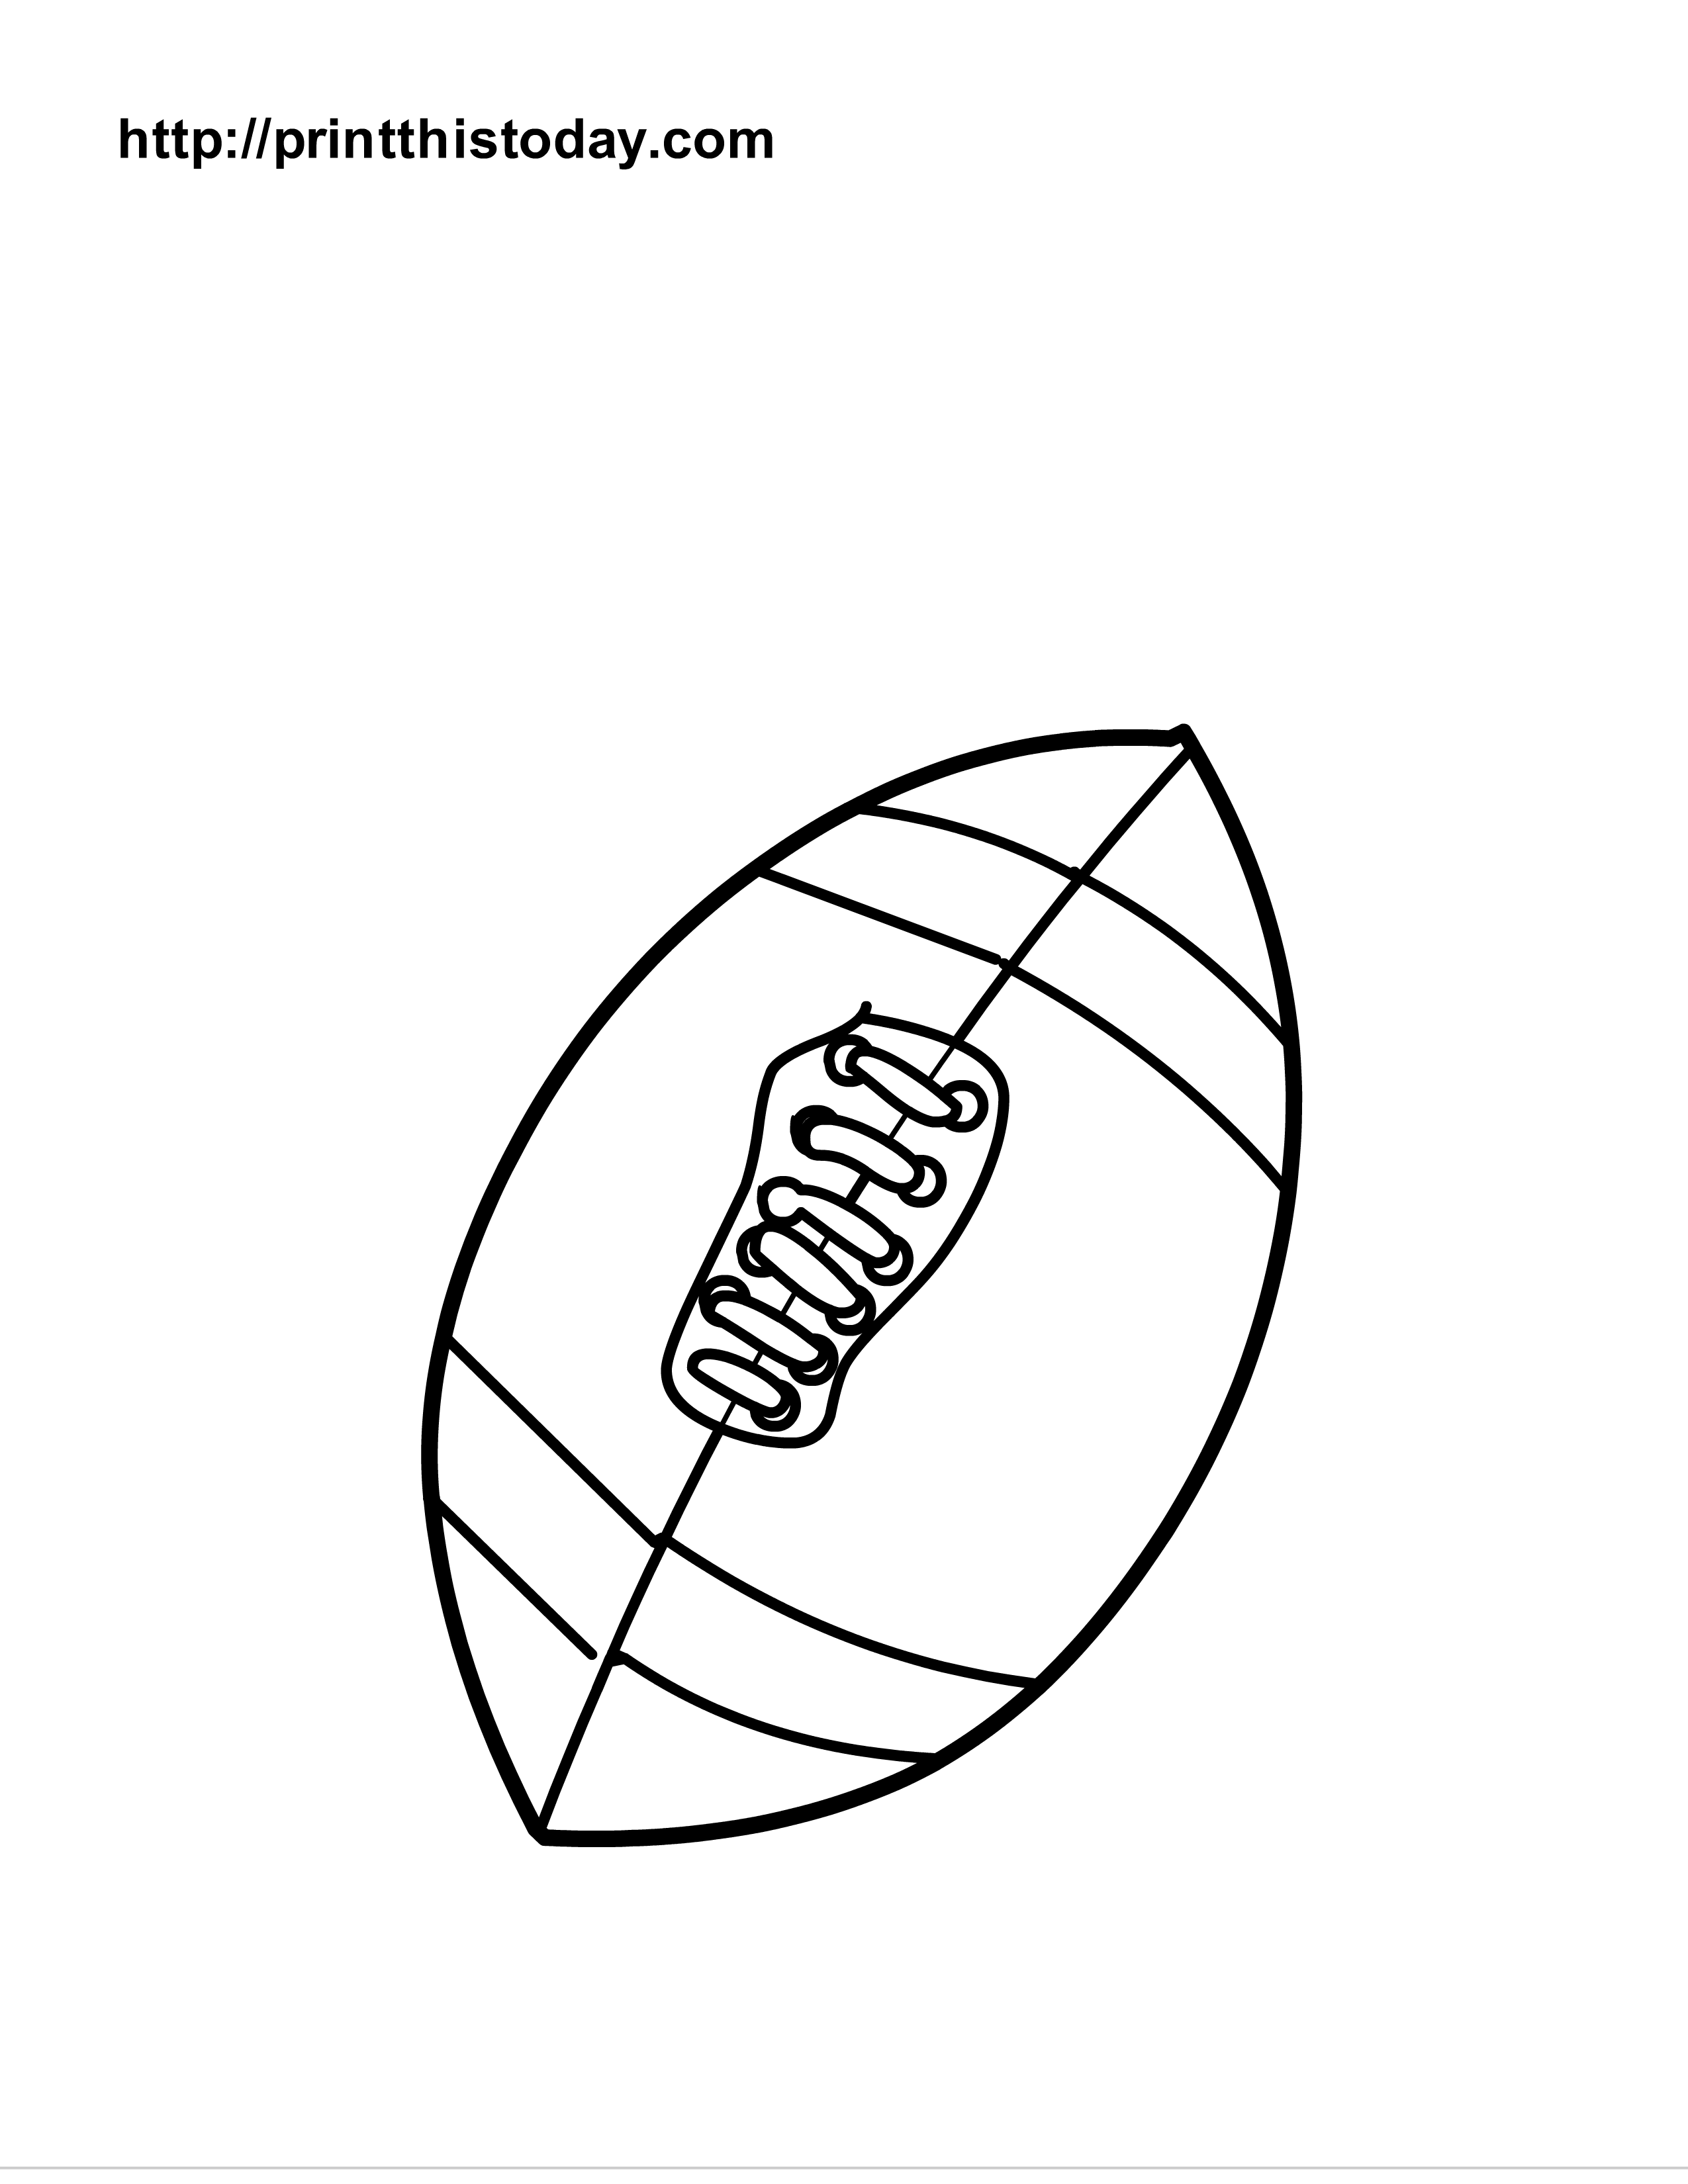 6 Images of Printable Sports Ball Templates